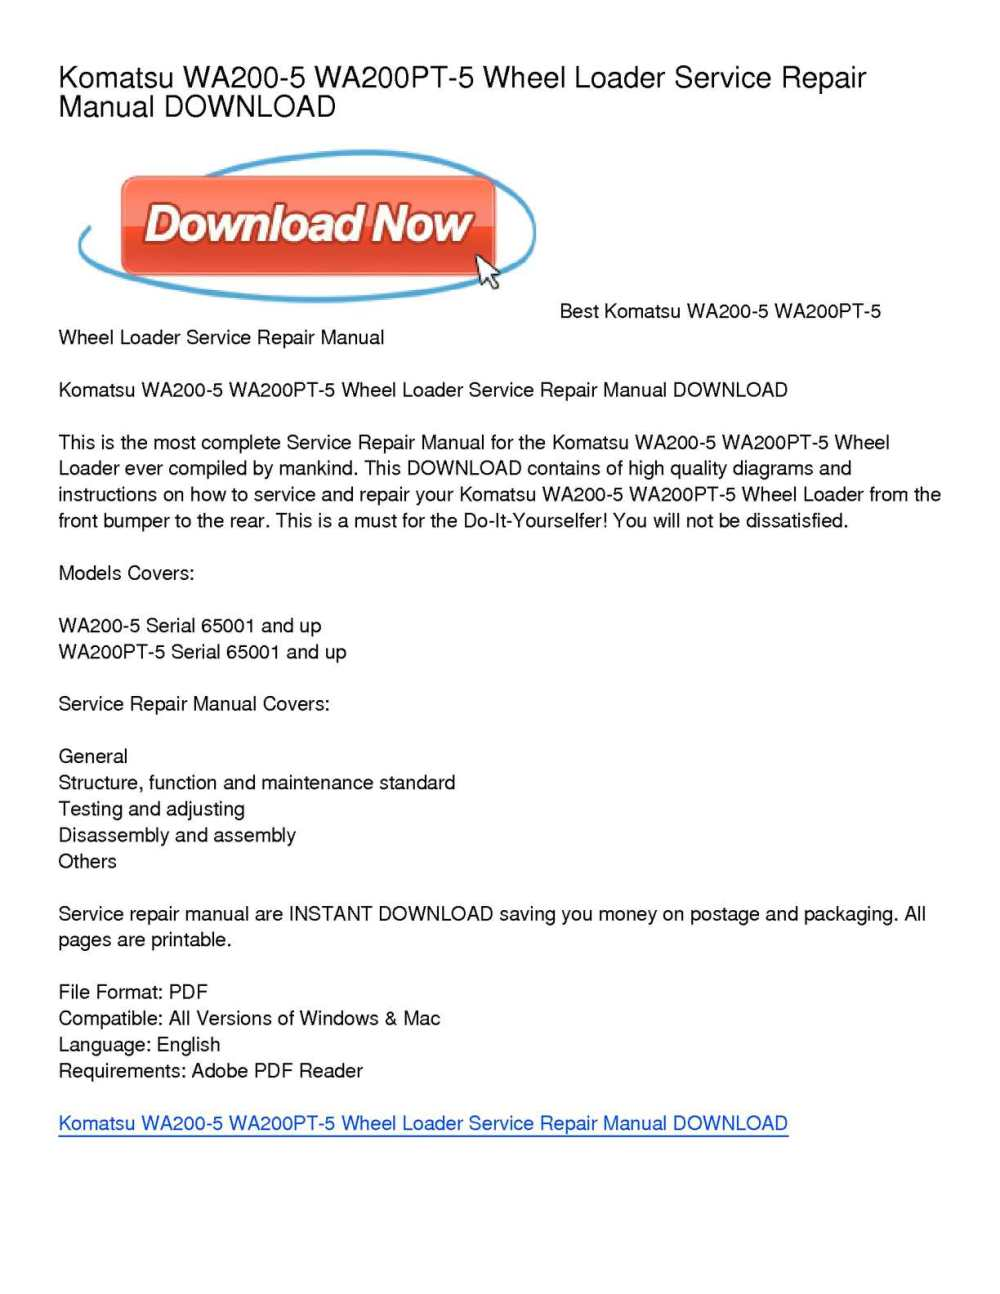 medium resolution of komatsu wa200 5 wa200pt 5 wheel loader service repair manual download